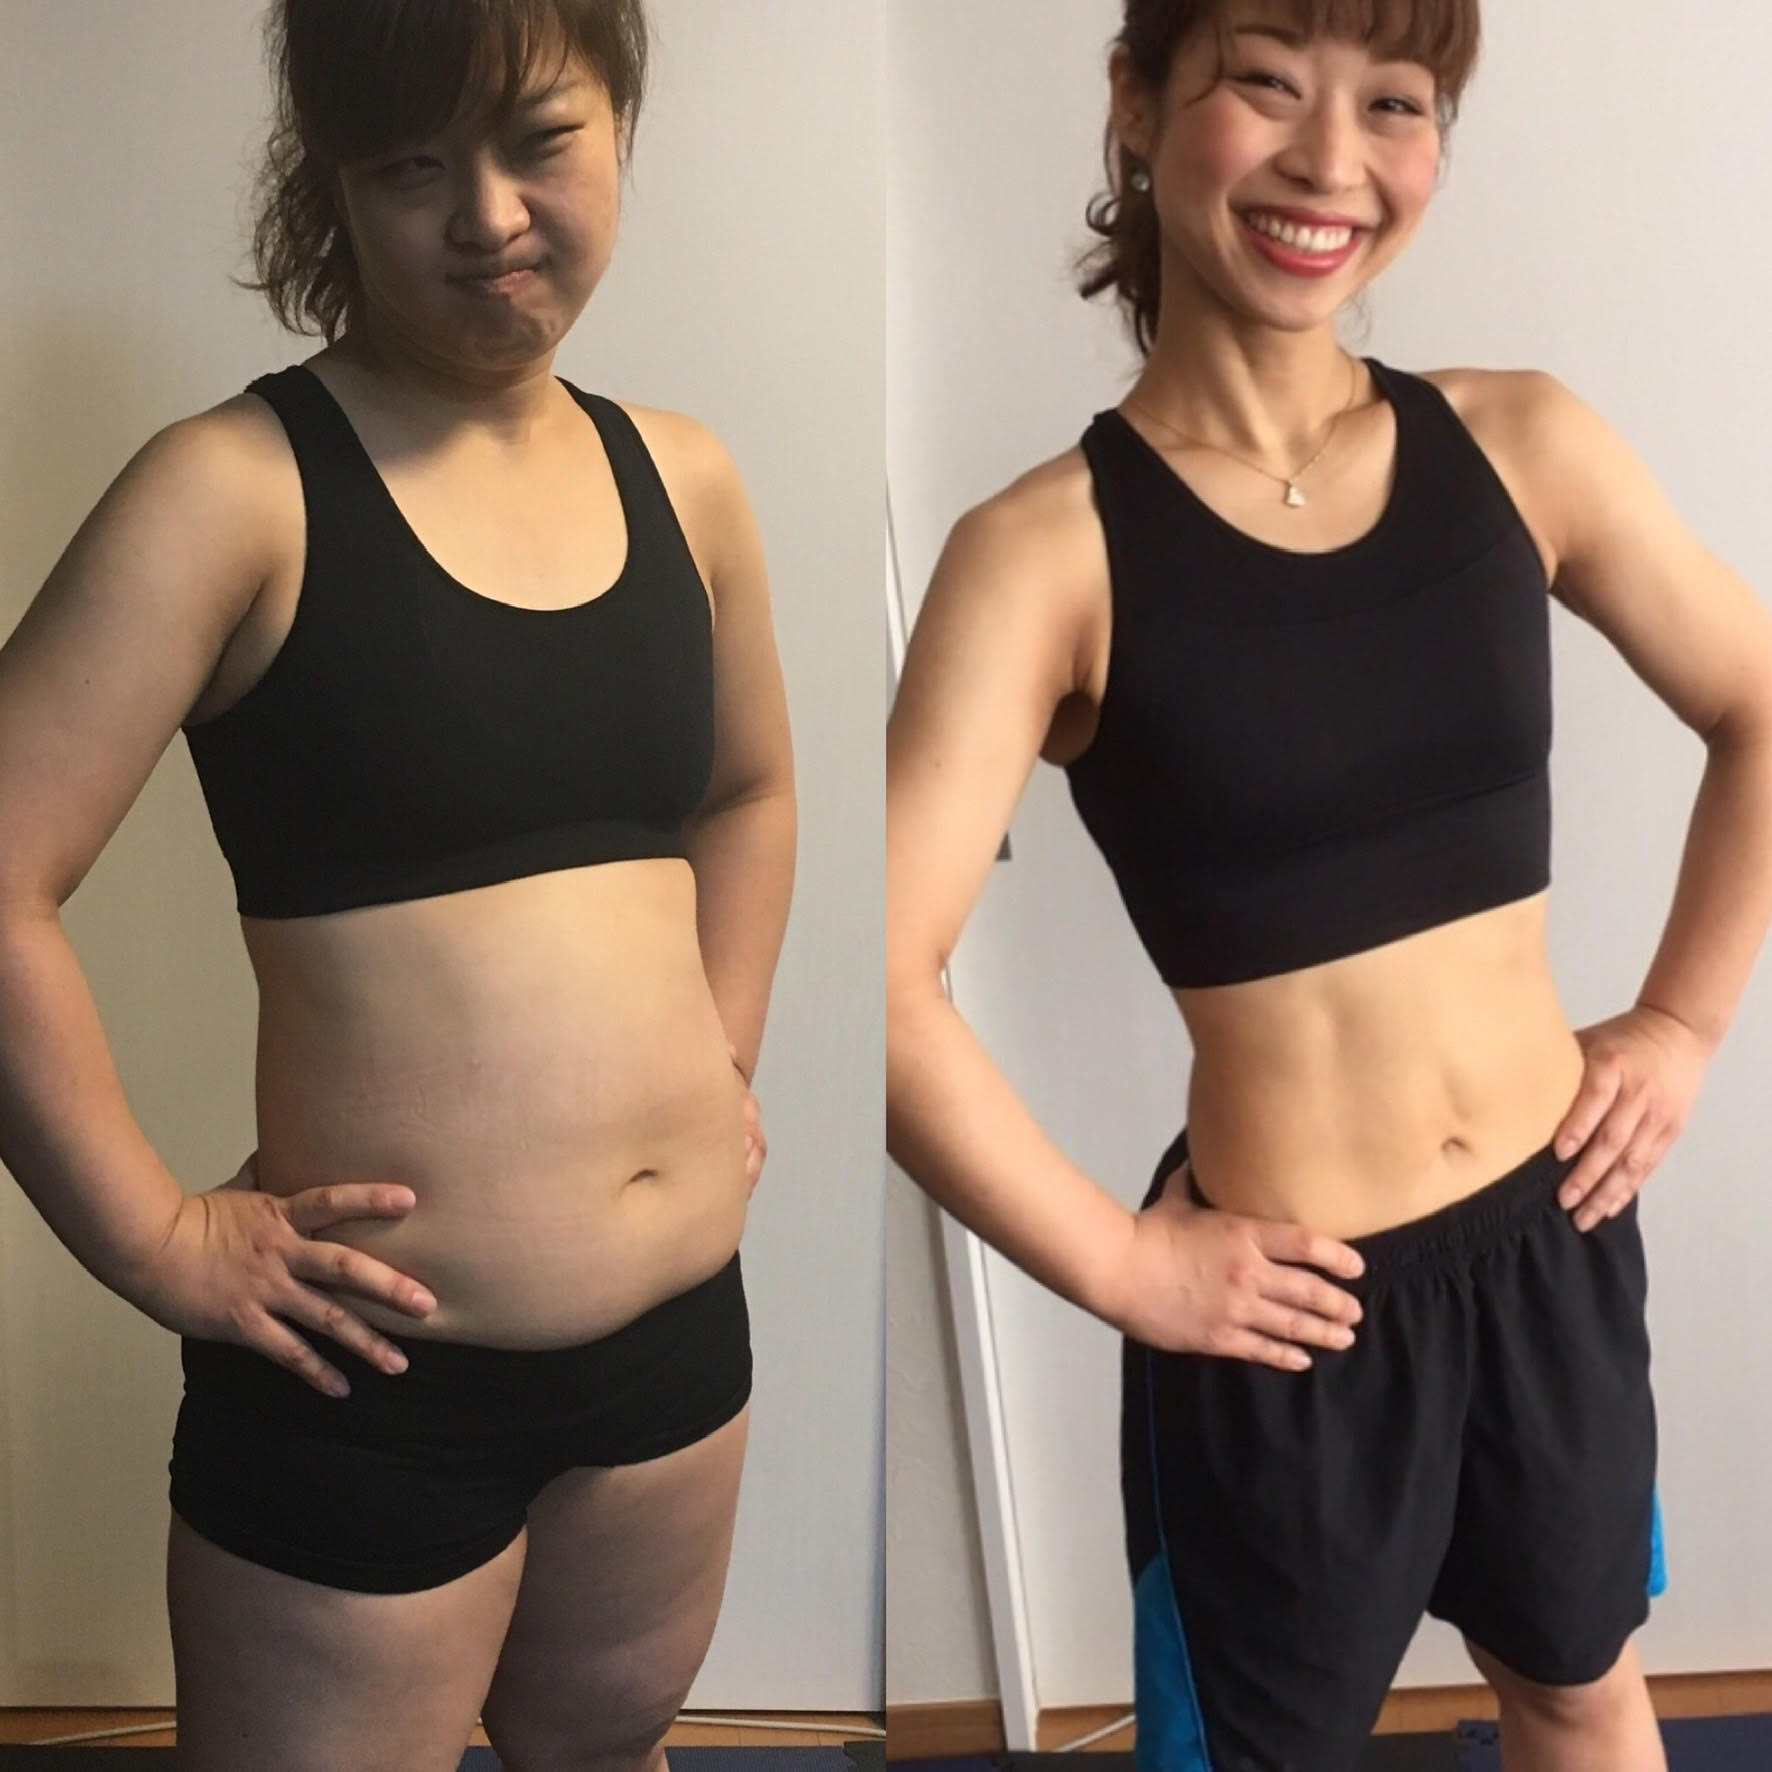 [Completely private room x women only] The OUTLINE Akihabara store of the personal training gym will open on 2/15 in Akihabara.